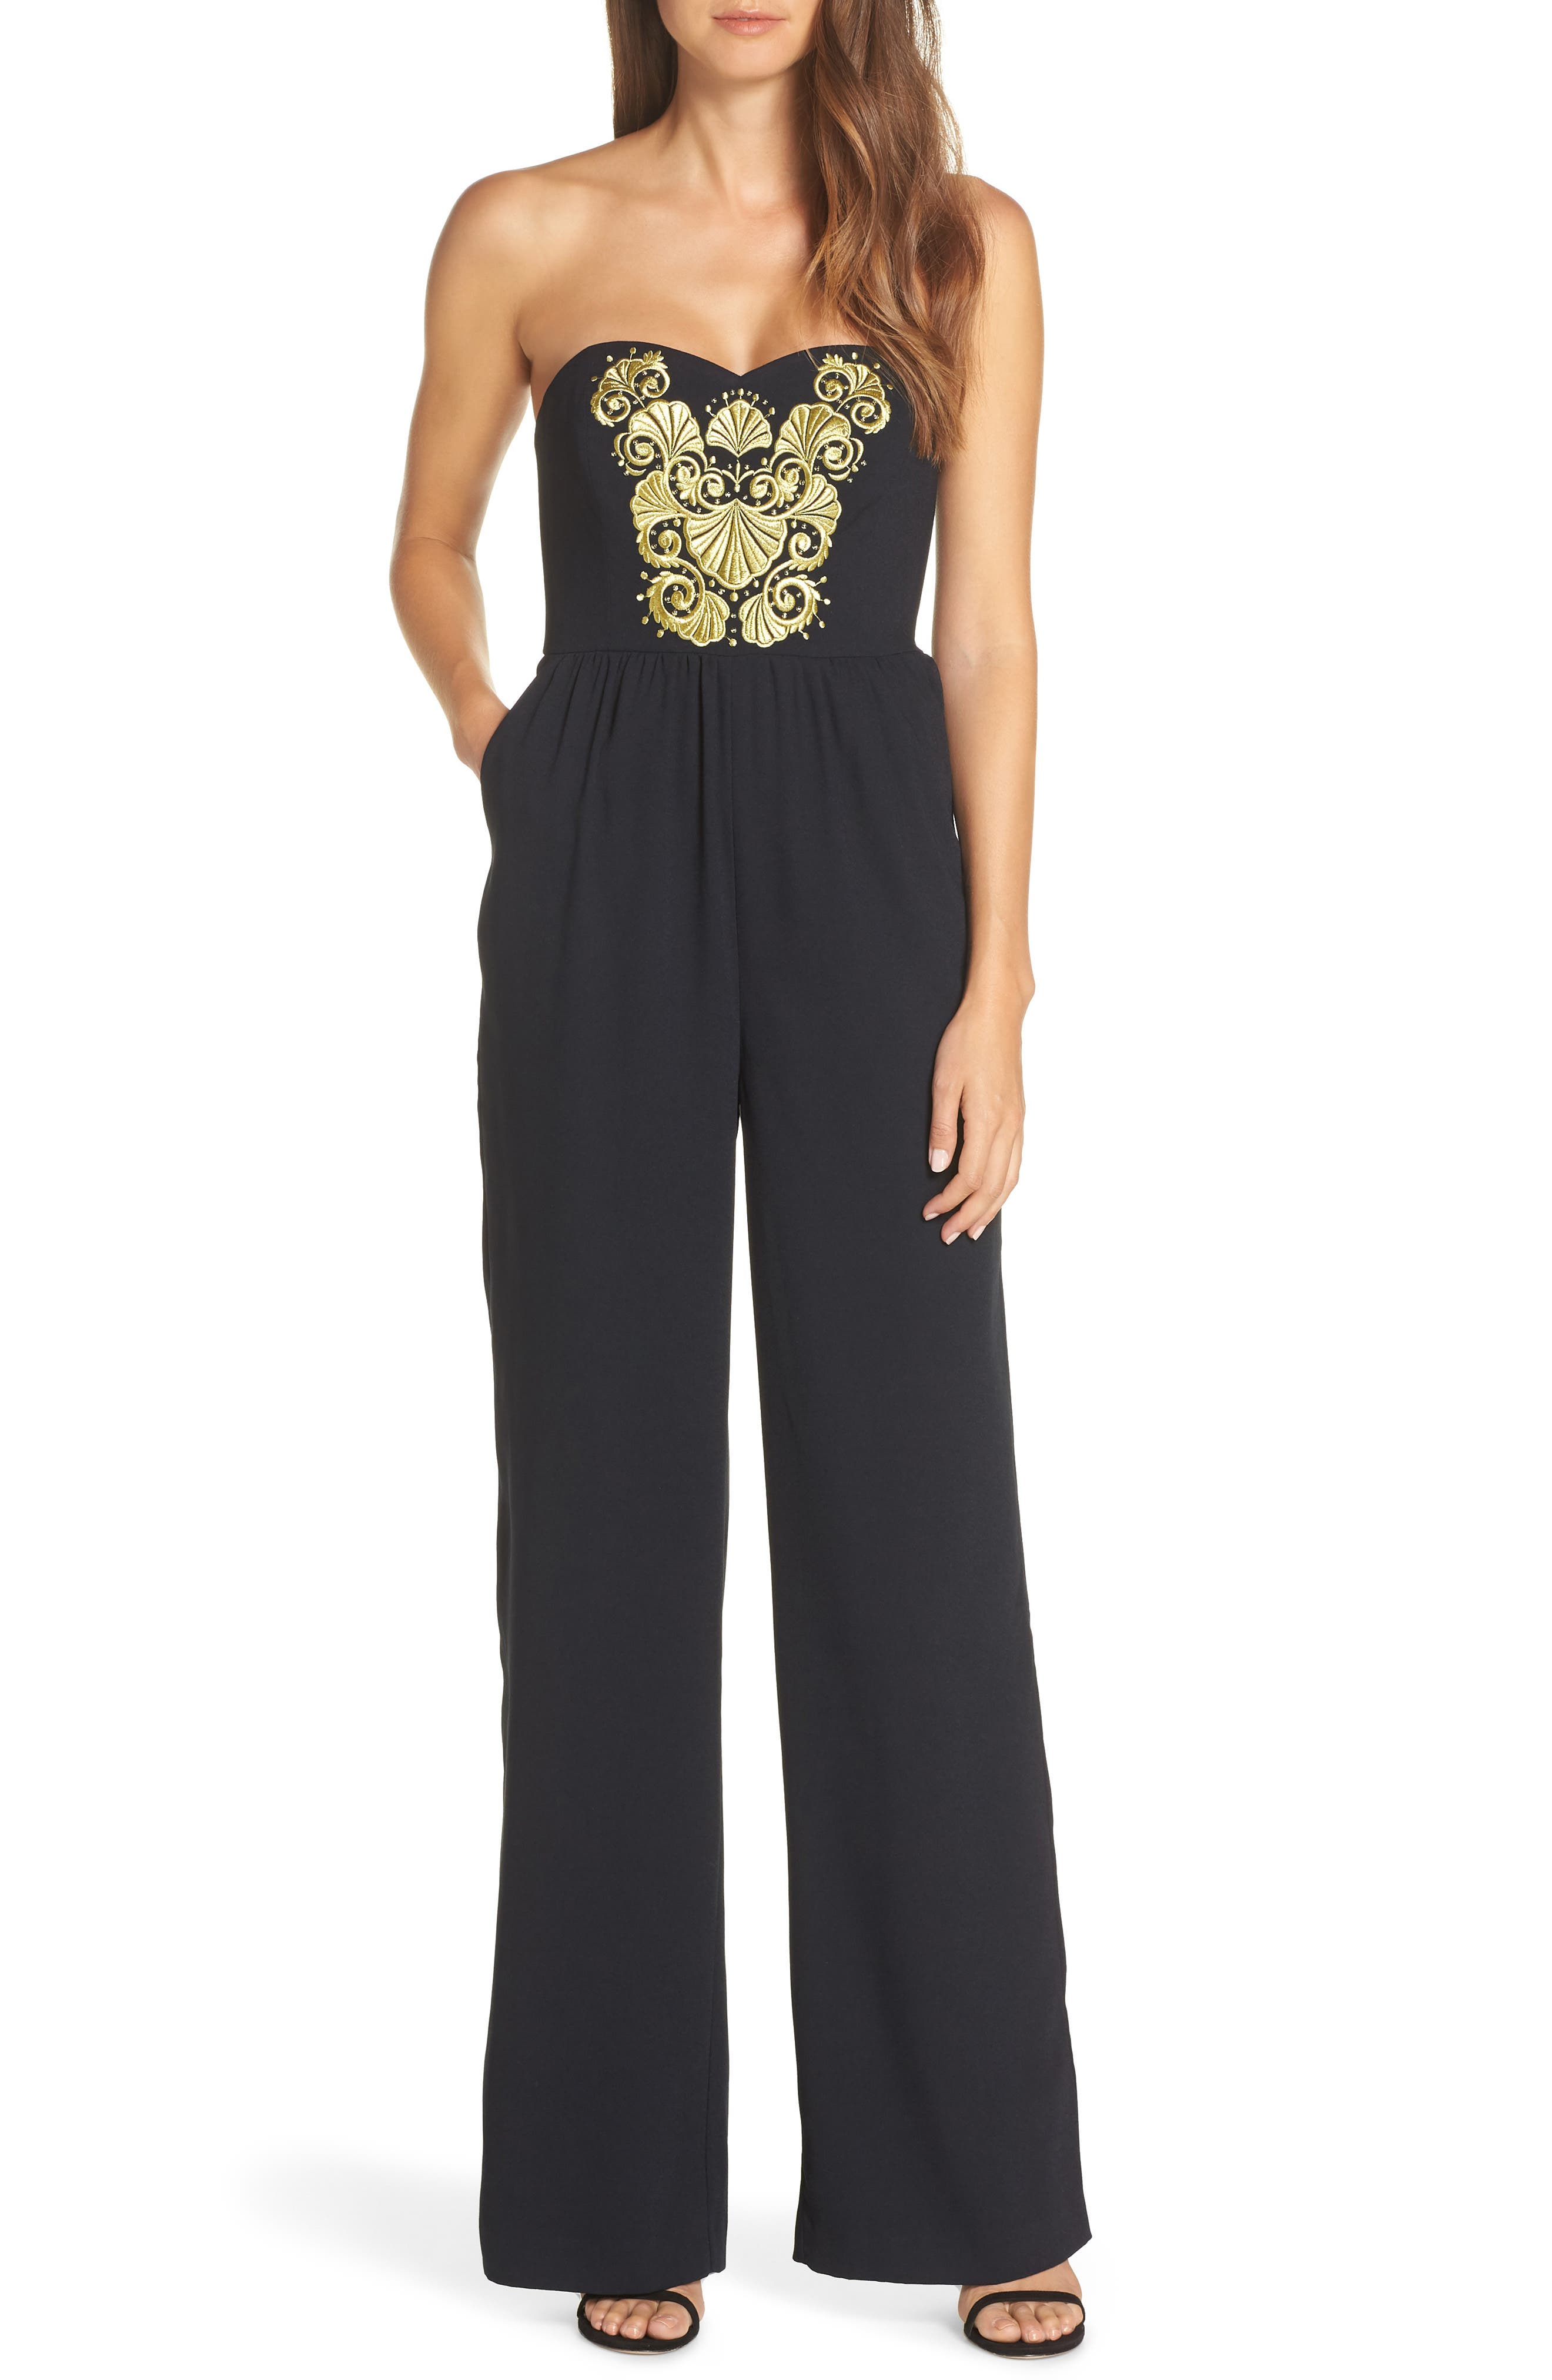 ISBN 9780000167002 product image for Women's Lilly Pulitzer Janelle Embellished Jumpsuit | upcitemdb.com